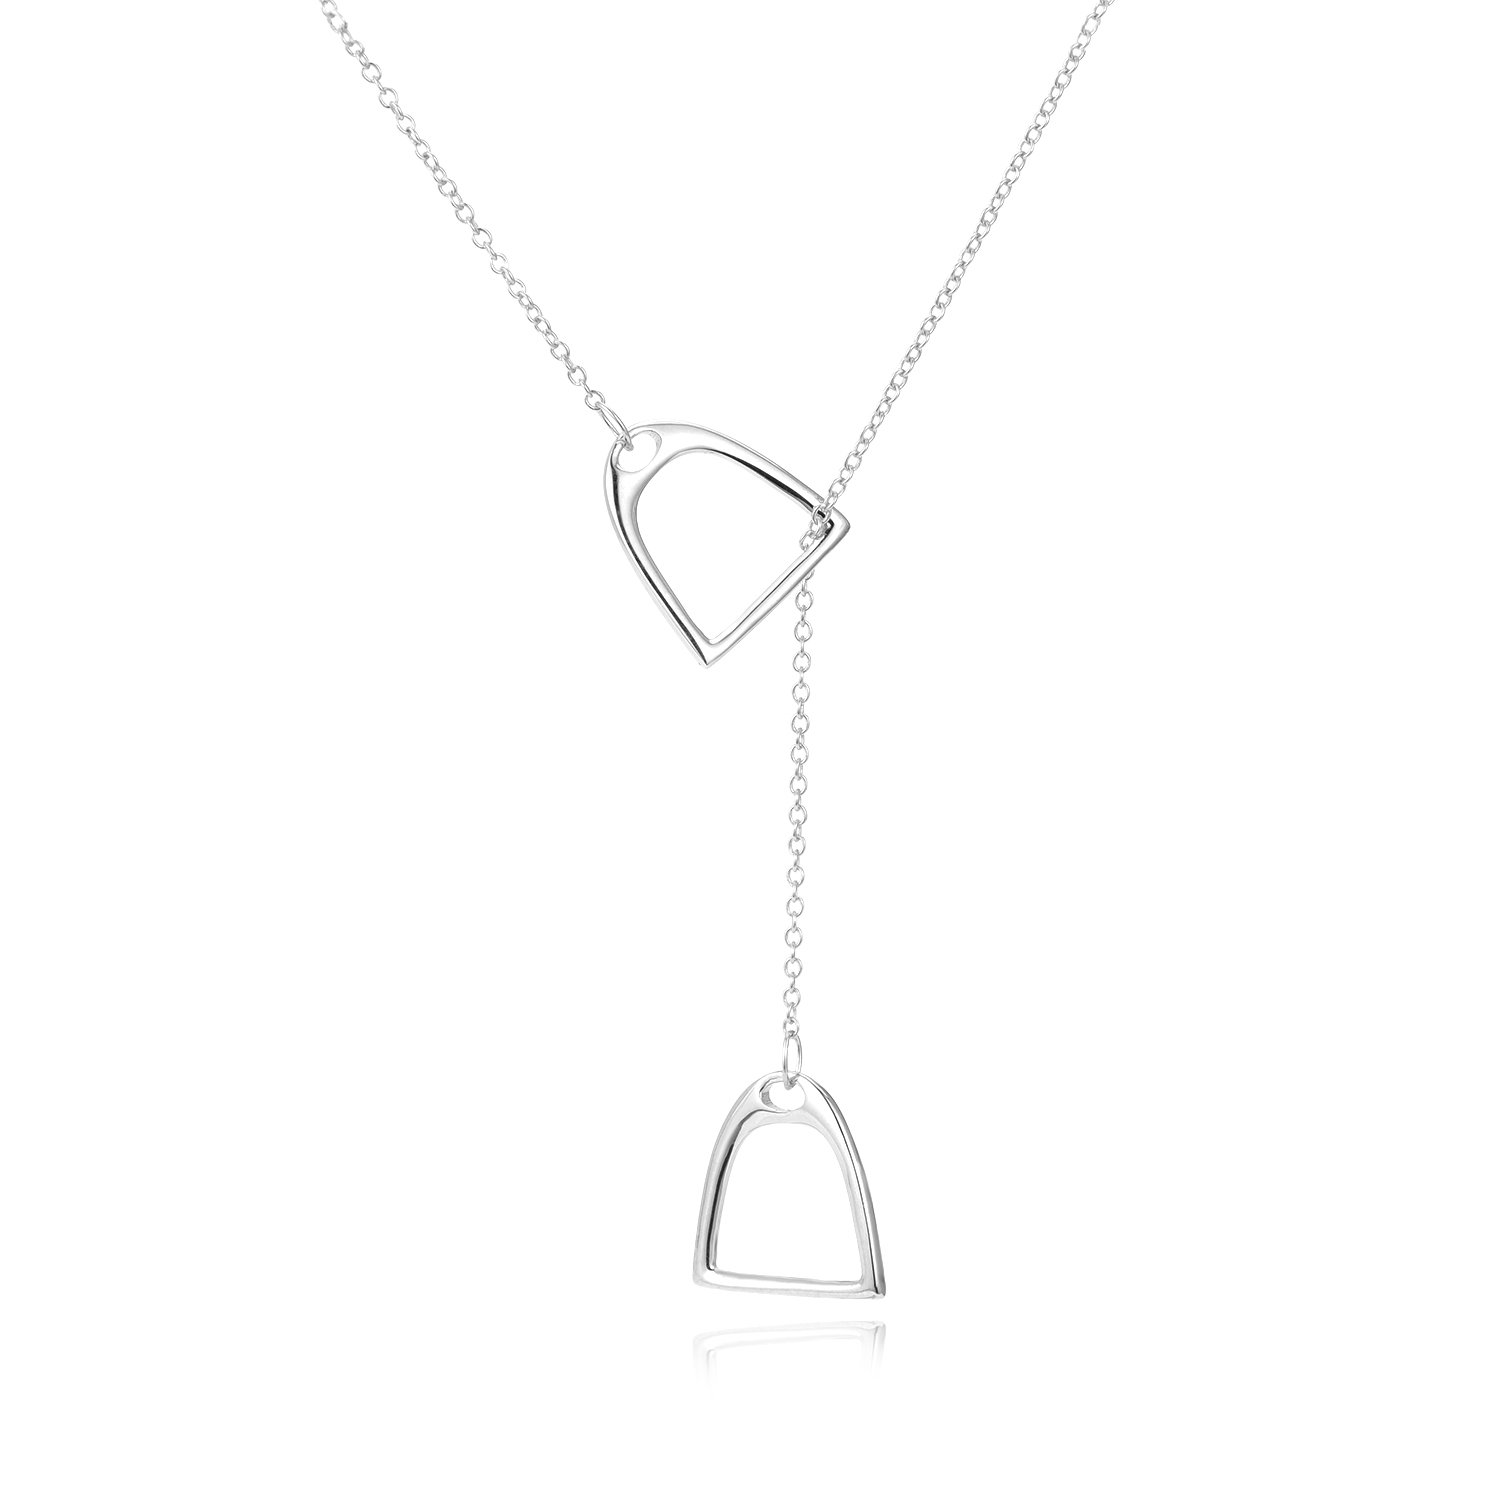 YFN Jewelry 925 Sterling Silver Simple Double Horse Stirrup Lariat Necklace Gift For Women Girls